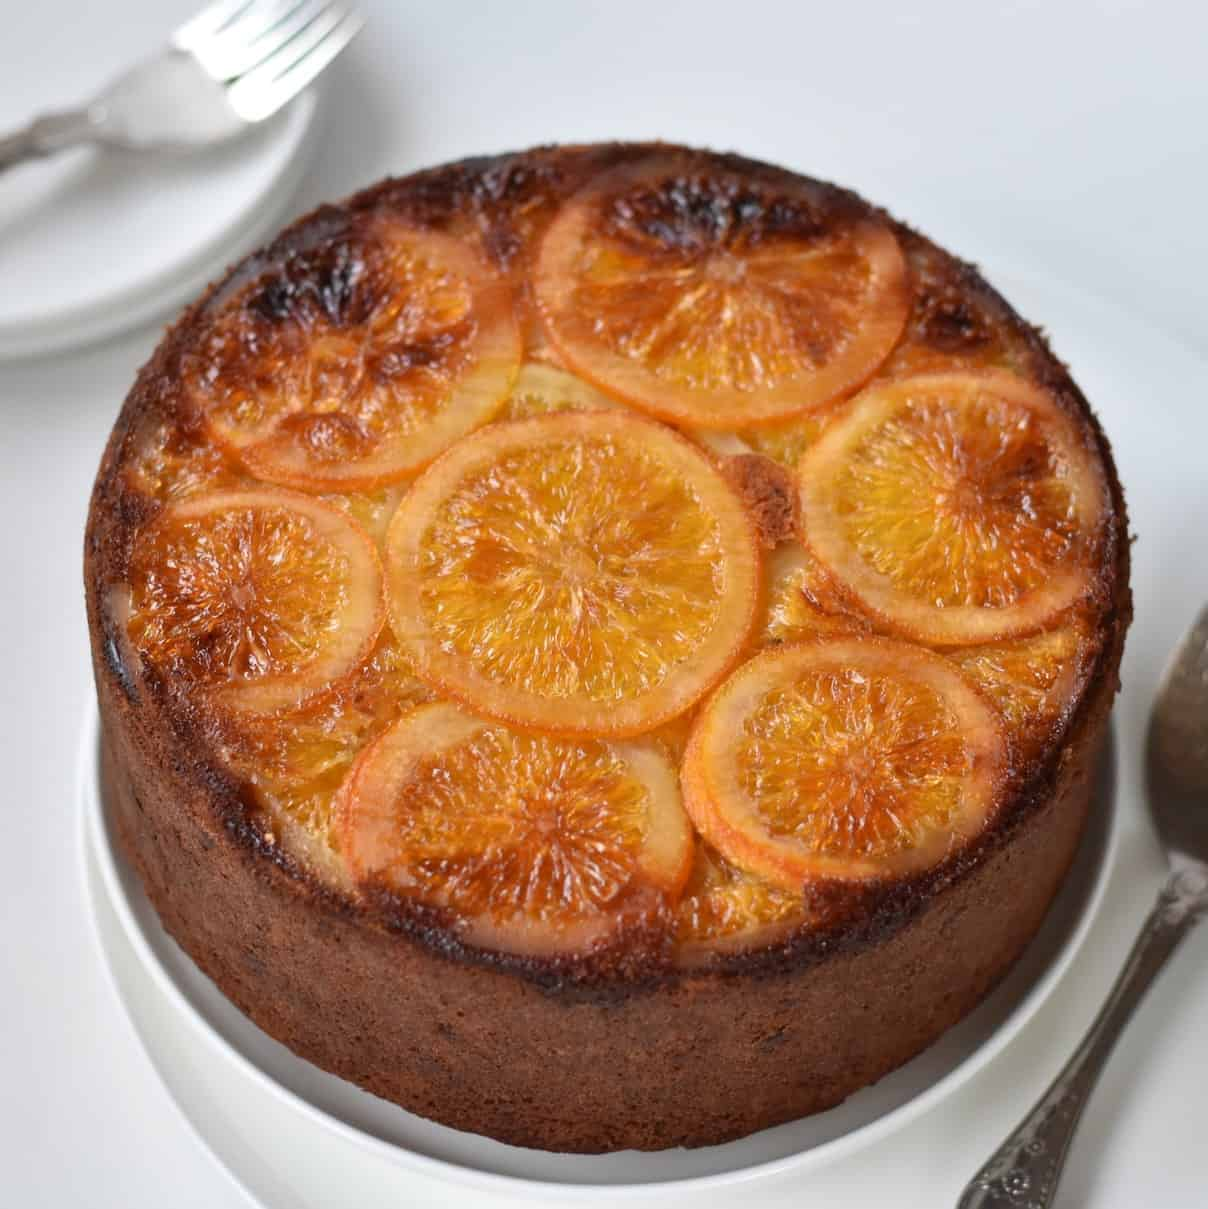 Hazelnut Cake with Candied Oranges displayed on a plate.